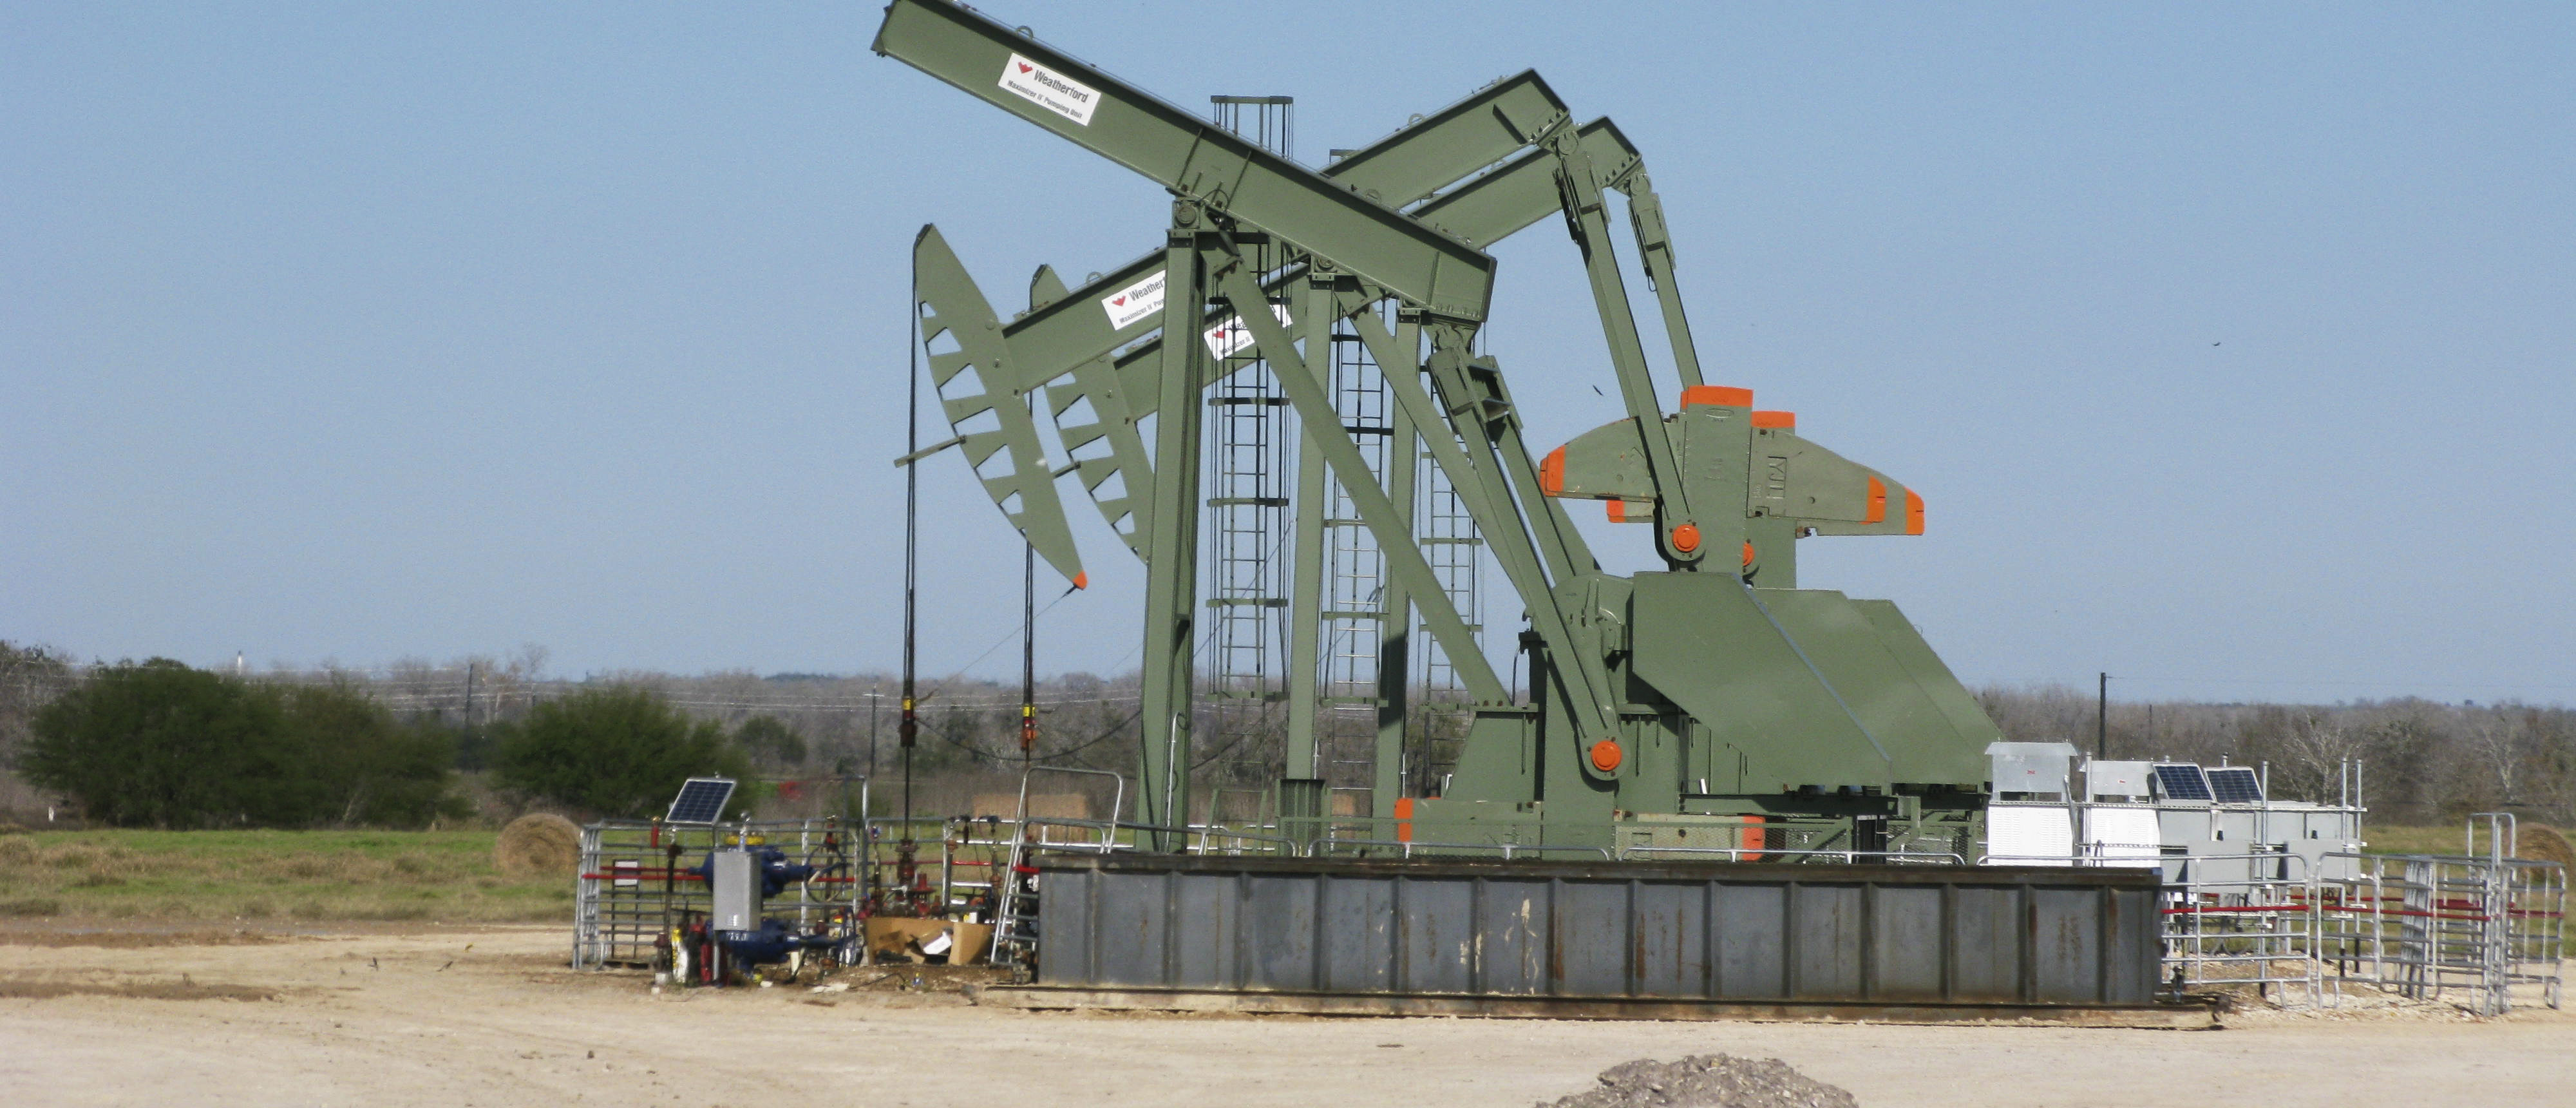 A pump jack stands idle in Dewitt County, Texas January 13, 2016. U.S. shale companies, which led the fracking revolution that unlocked vast new supplies of crude from rock, are fast losing their footing as a deeper plunge in oil to below $30 a barrel intensifies a financial tailspin that started more than a year ago. Picture taken on January 13, 2016. REUTERS/Anna Driver